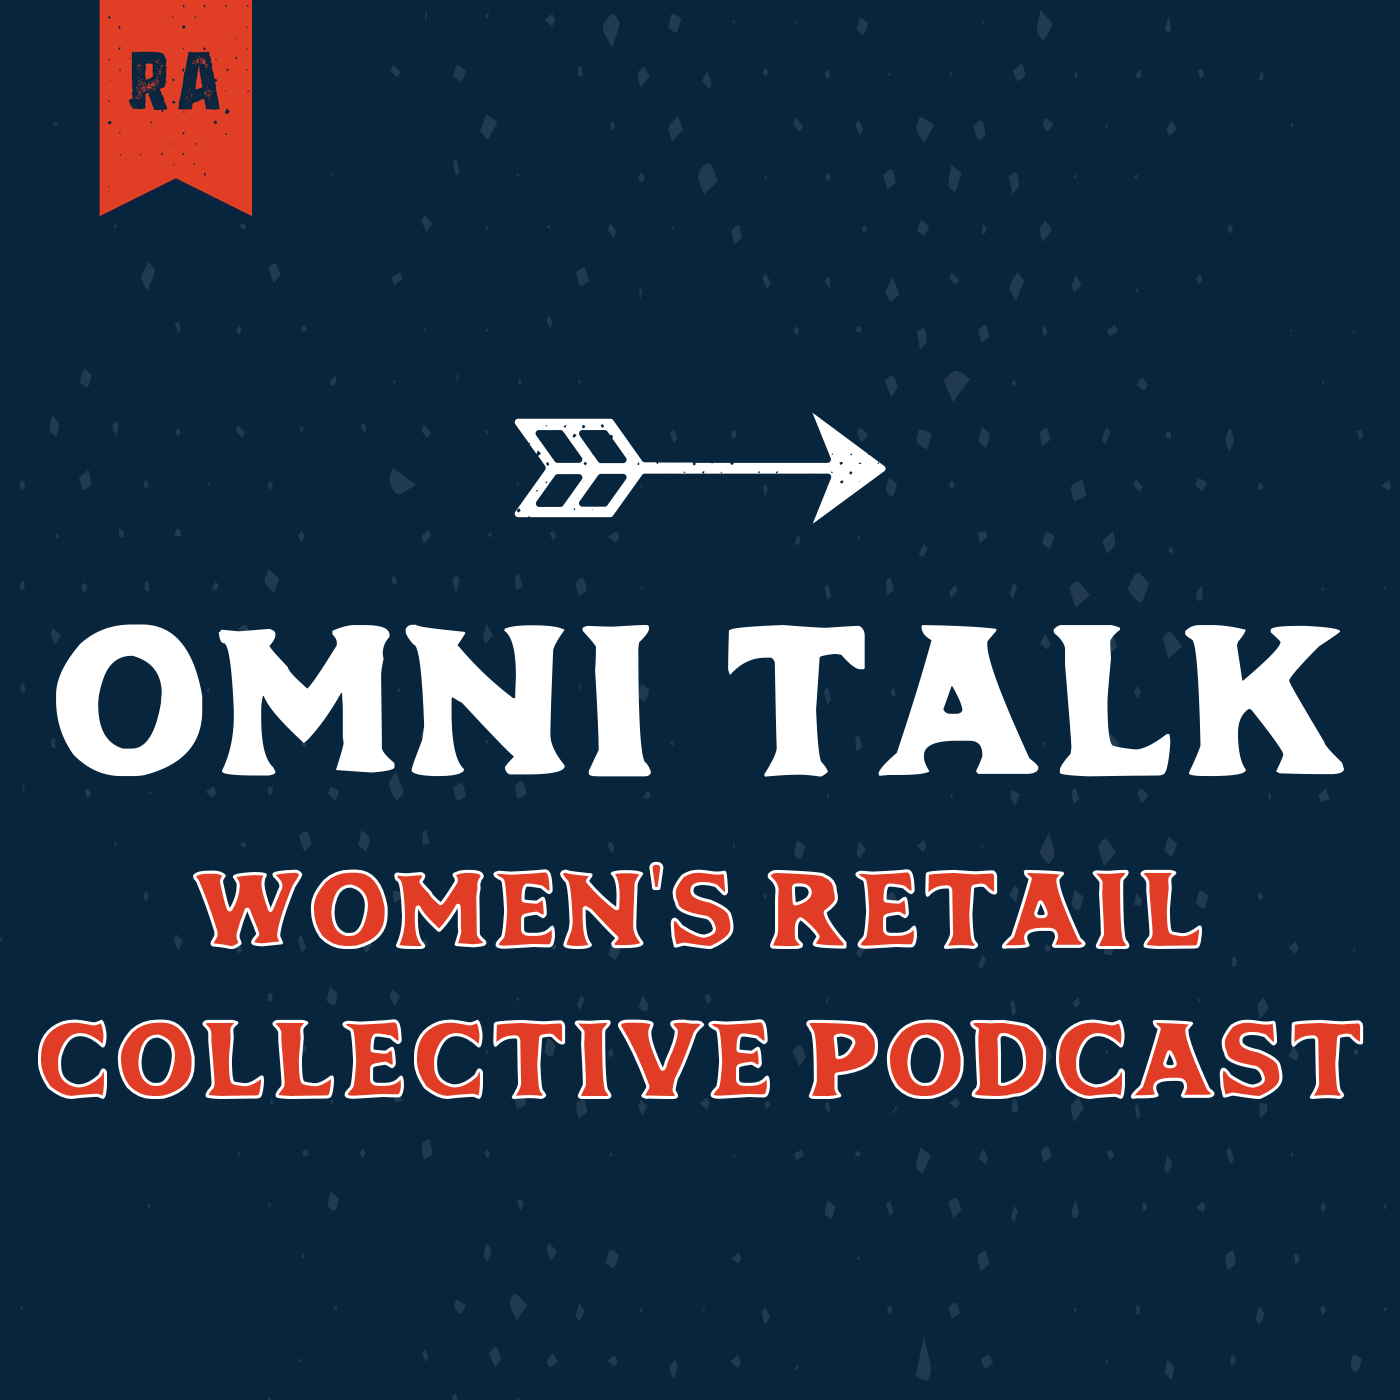 The Women's Retail Collective Podcast | 7-Eleven SVP And CAO Alicia Howell